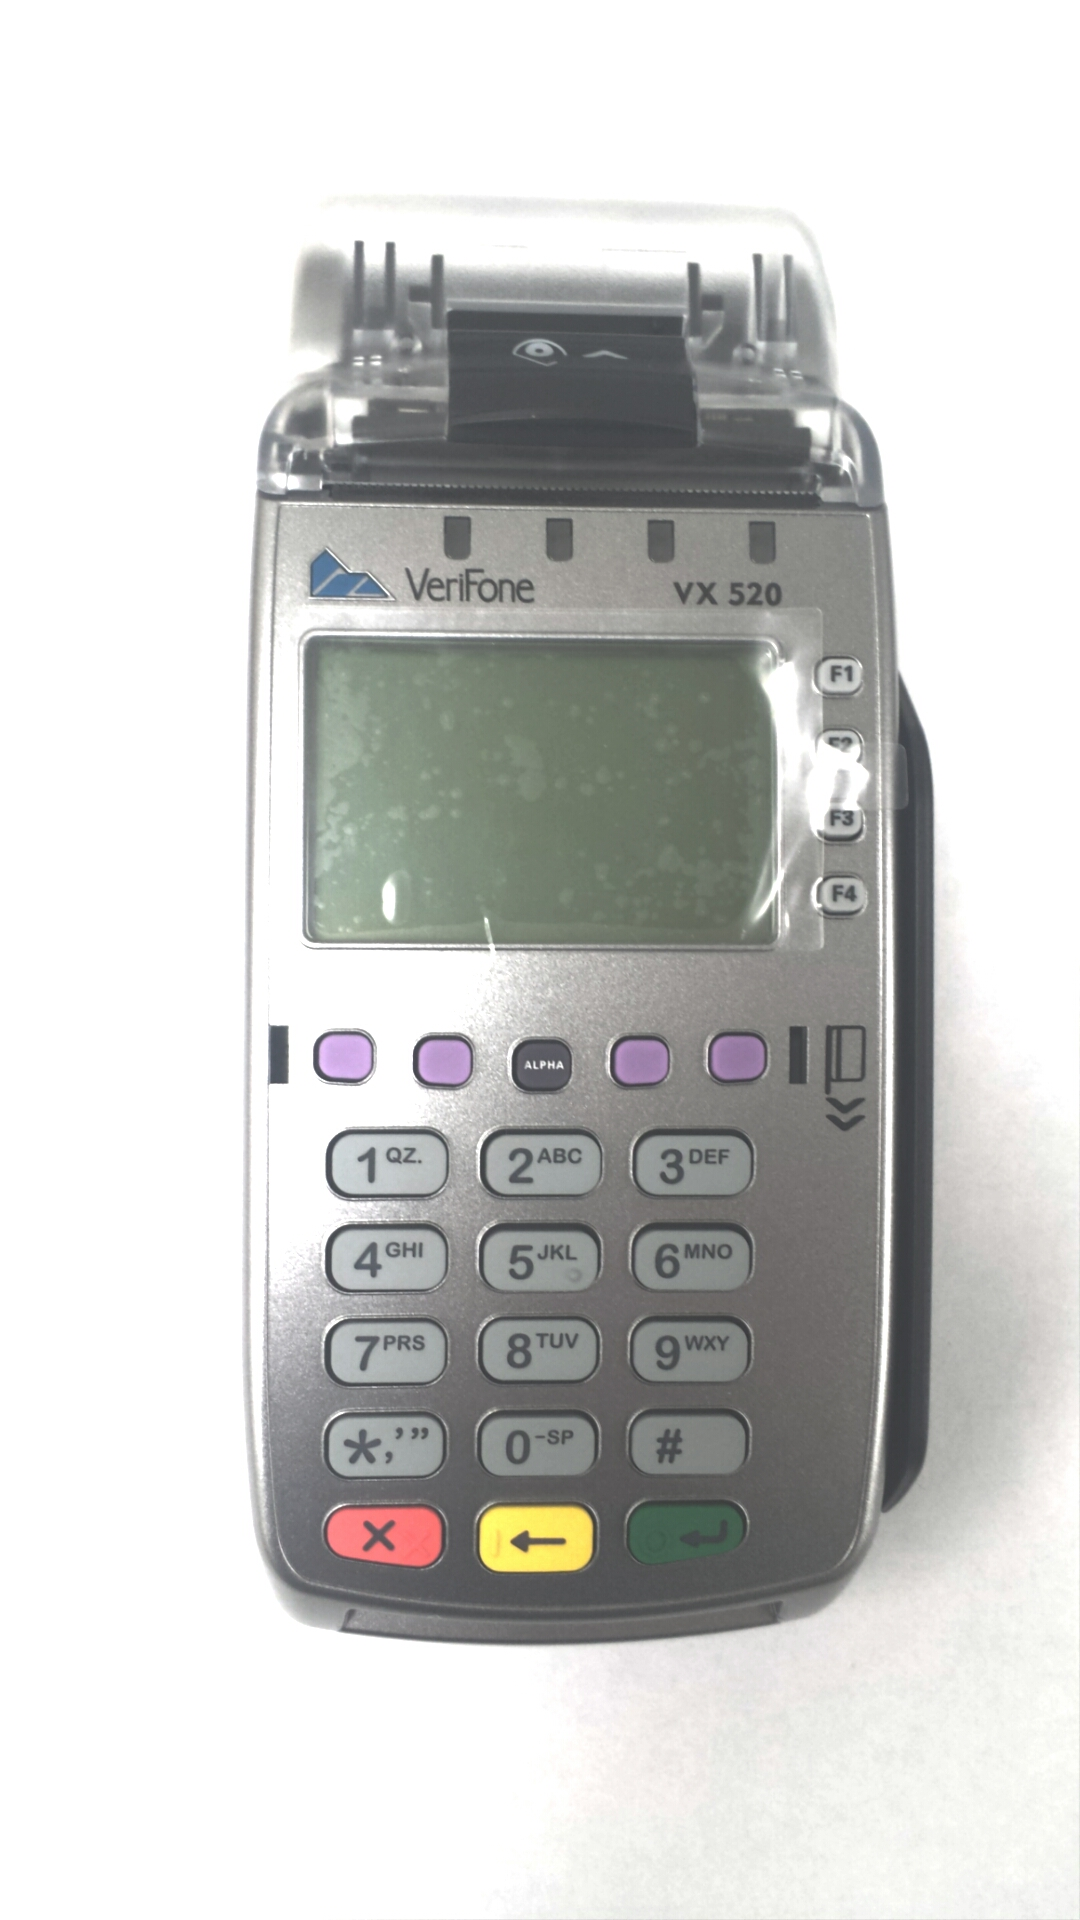 Refurb Verifone Vx520 EMV/Contactless Credit Card Terminal